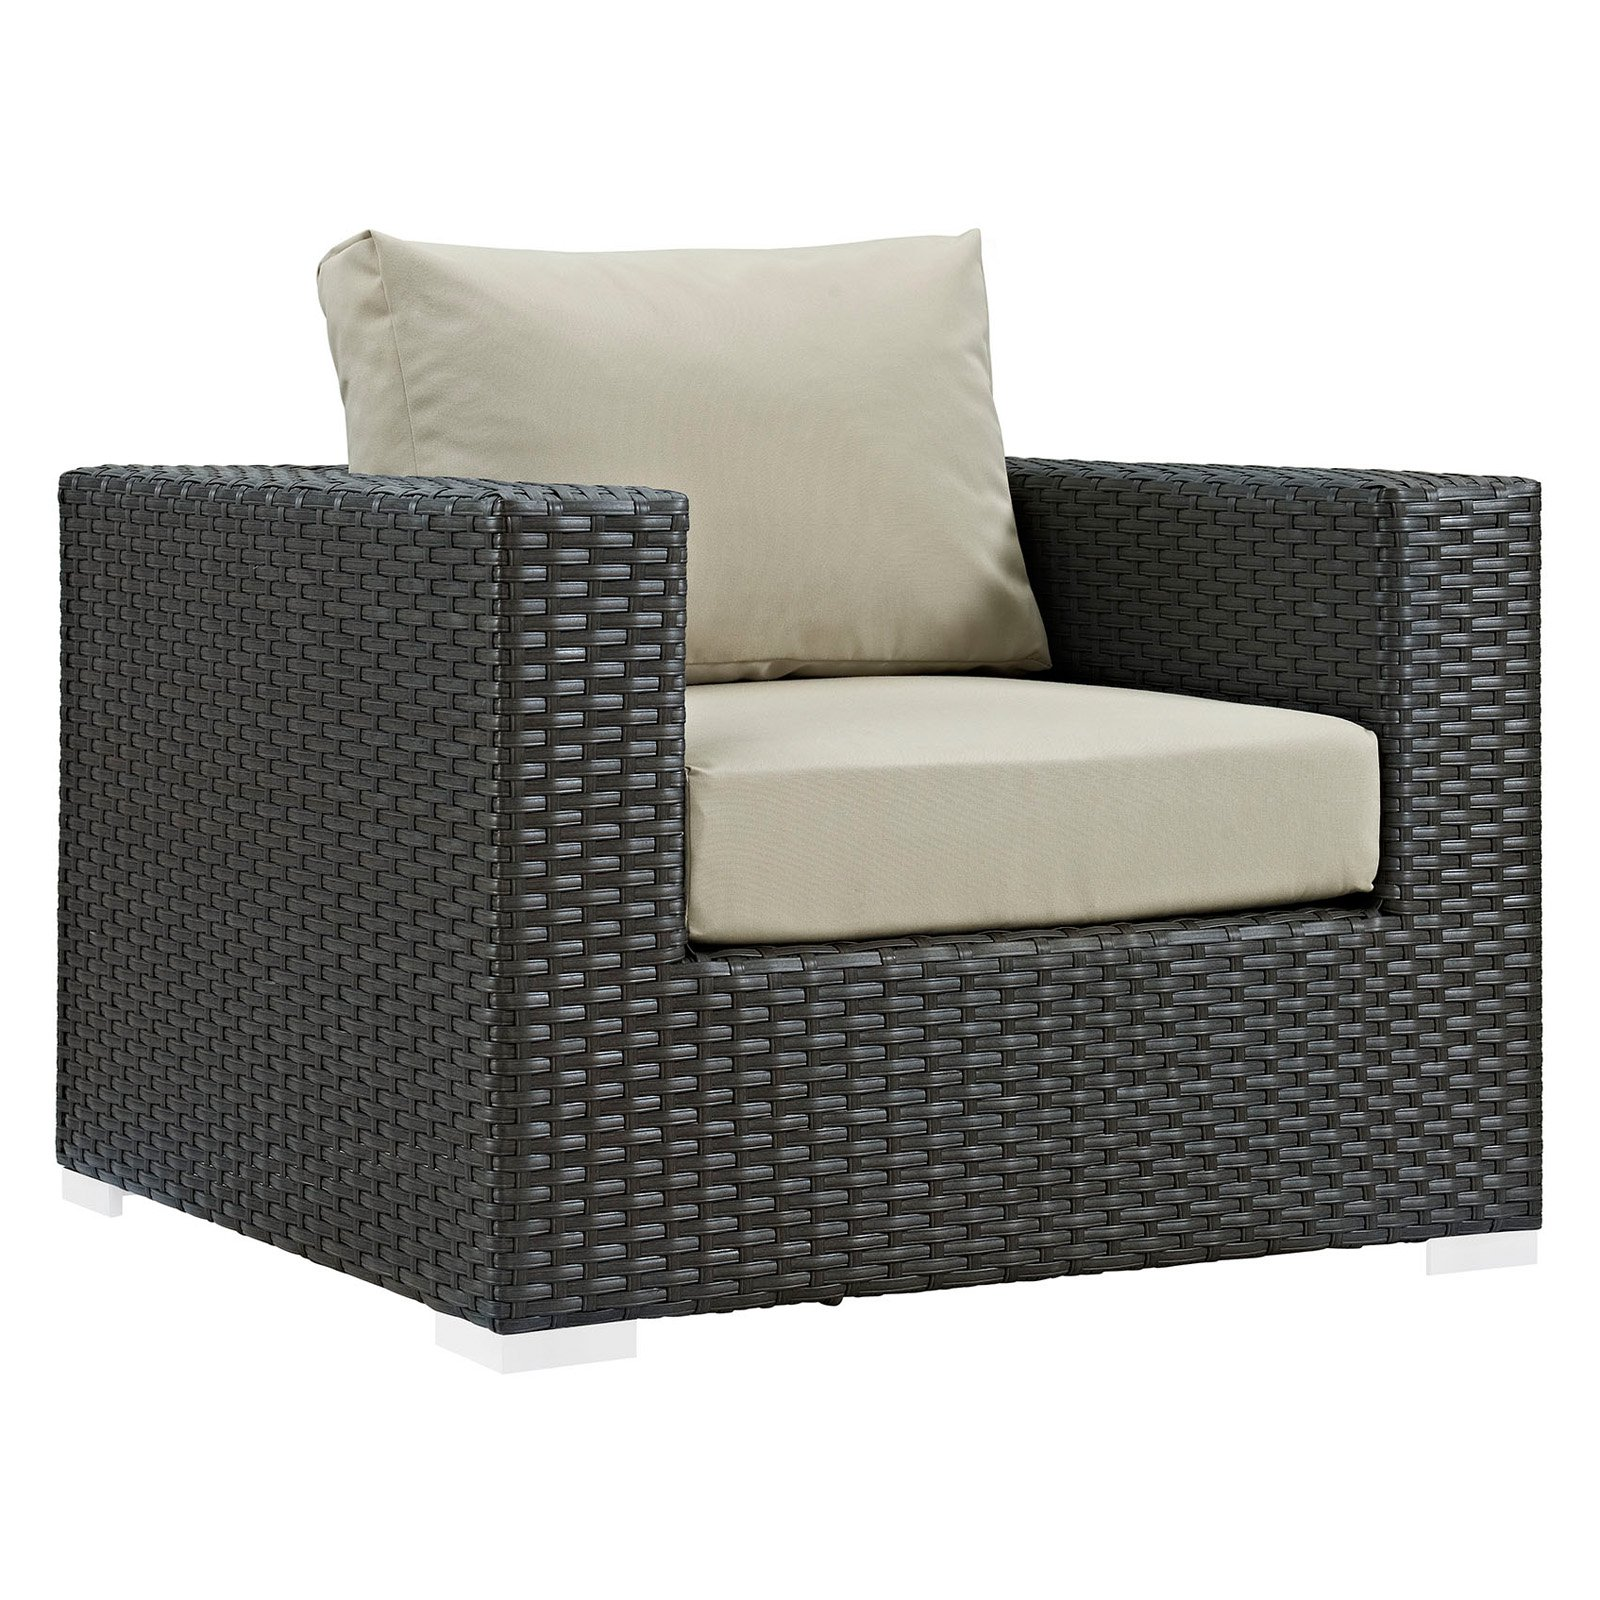 Modway Sojourn Outdoor Patio Sunbrella Armchair, Multiple Colors